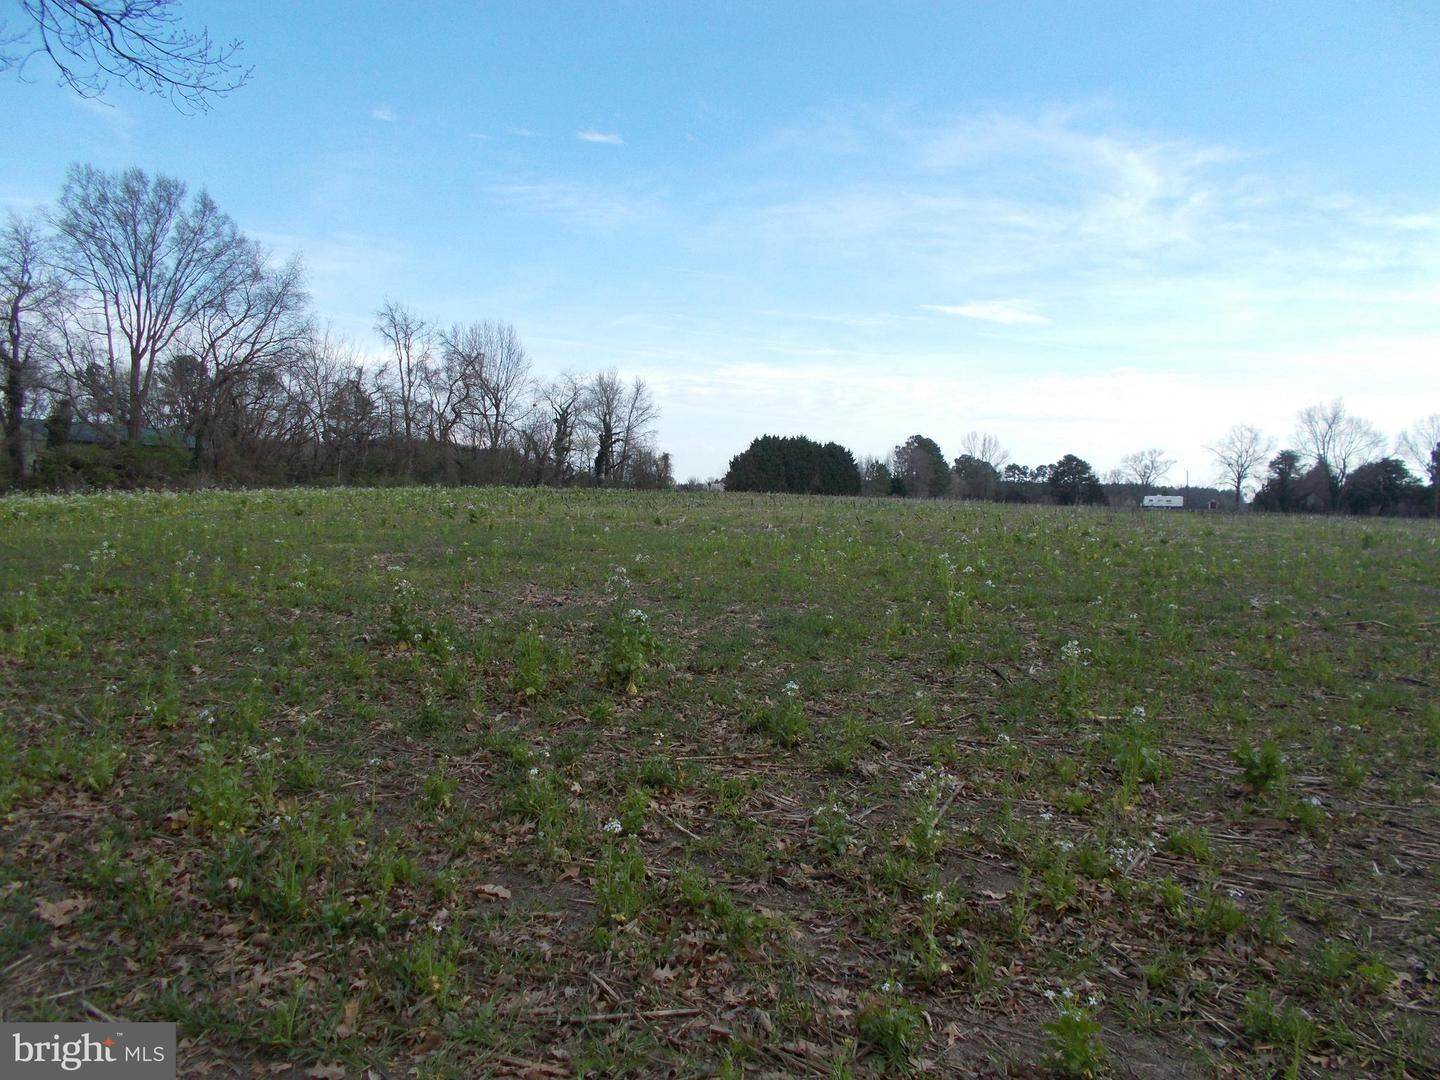 Photo for SUICIDE BRIDGE RD, EAST NEW MARKET, MD 21631 (MLS # MDDO124938)